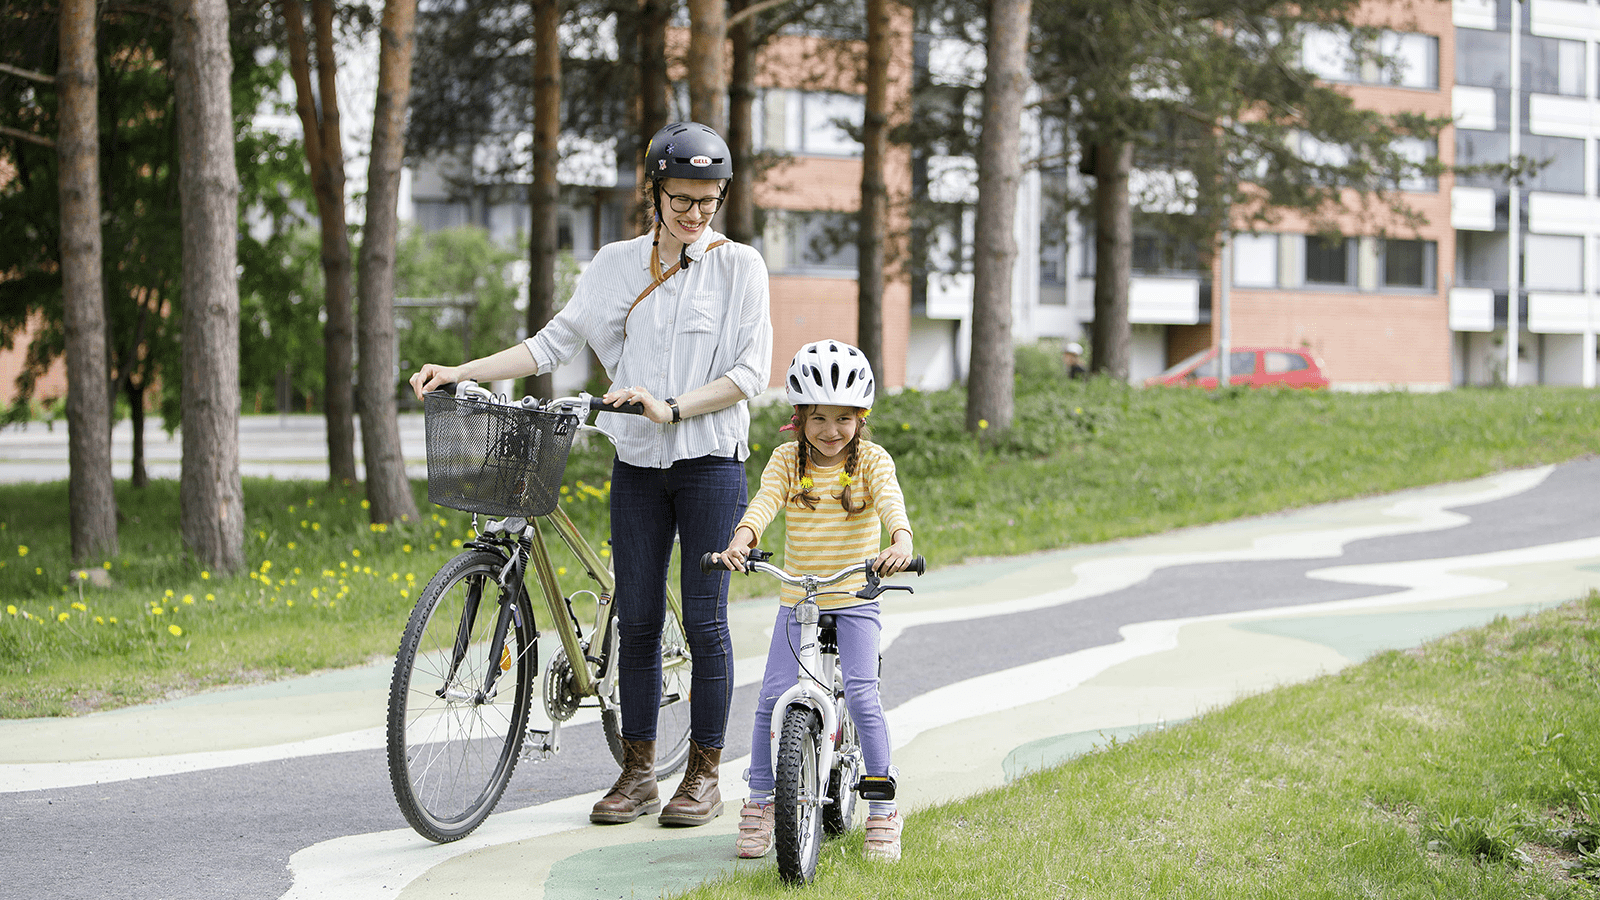 Adult is walking their bike and child is riding a bike